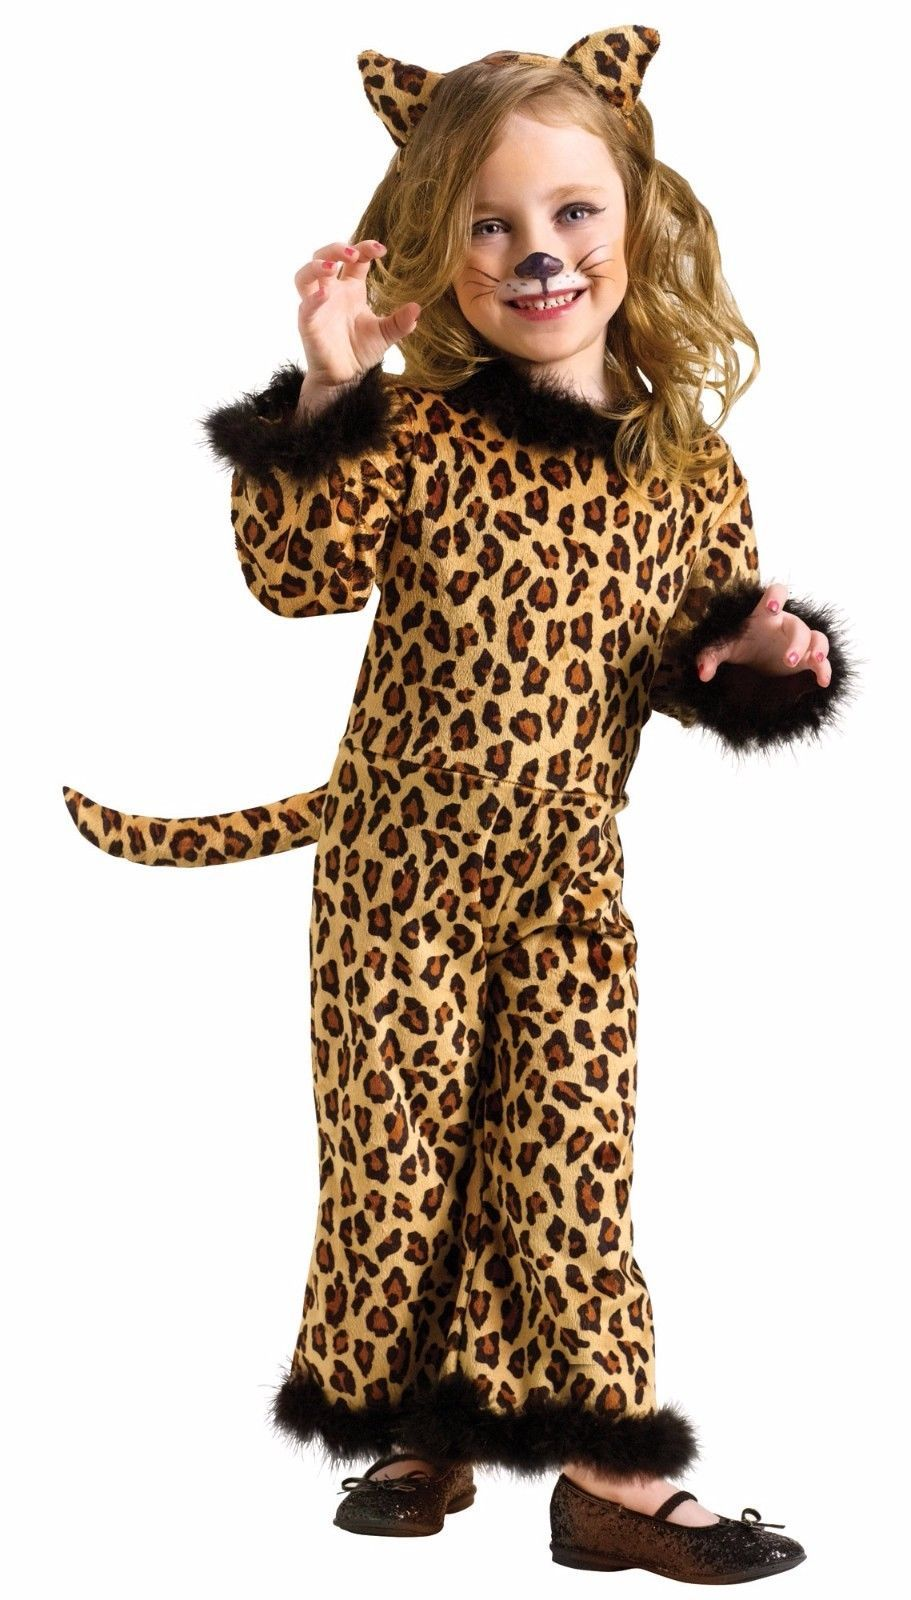 621dde178709 Details about Girls Leopard Costume Cat Toddler Child Cheetah ...